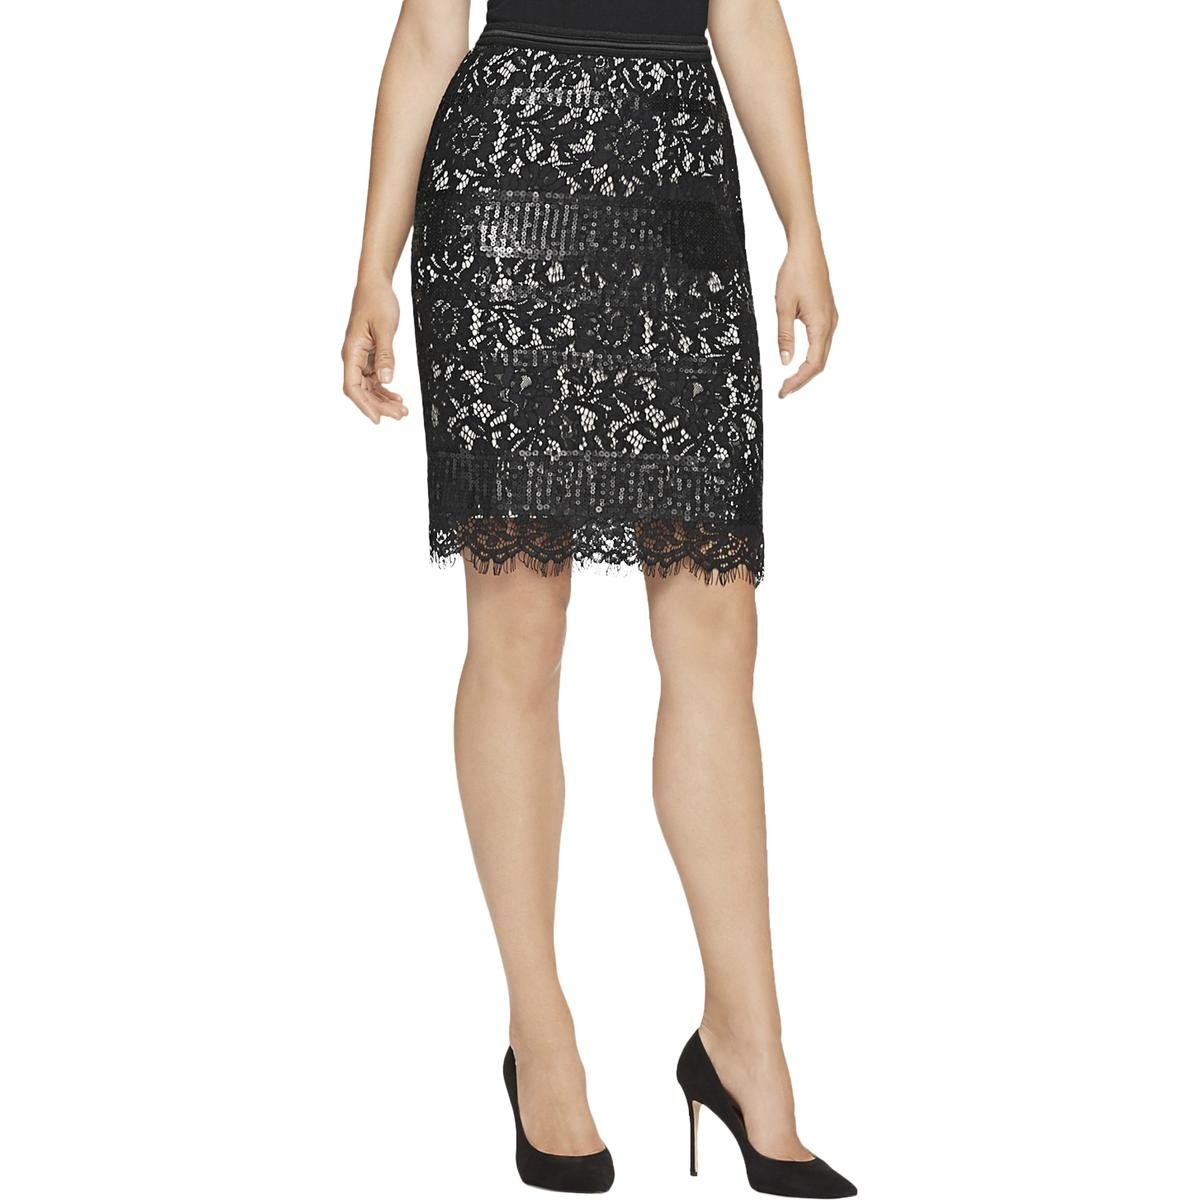 Elie Tahari Womens Sequined Lined Pencil Skirt Black 4